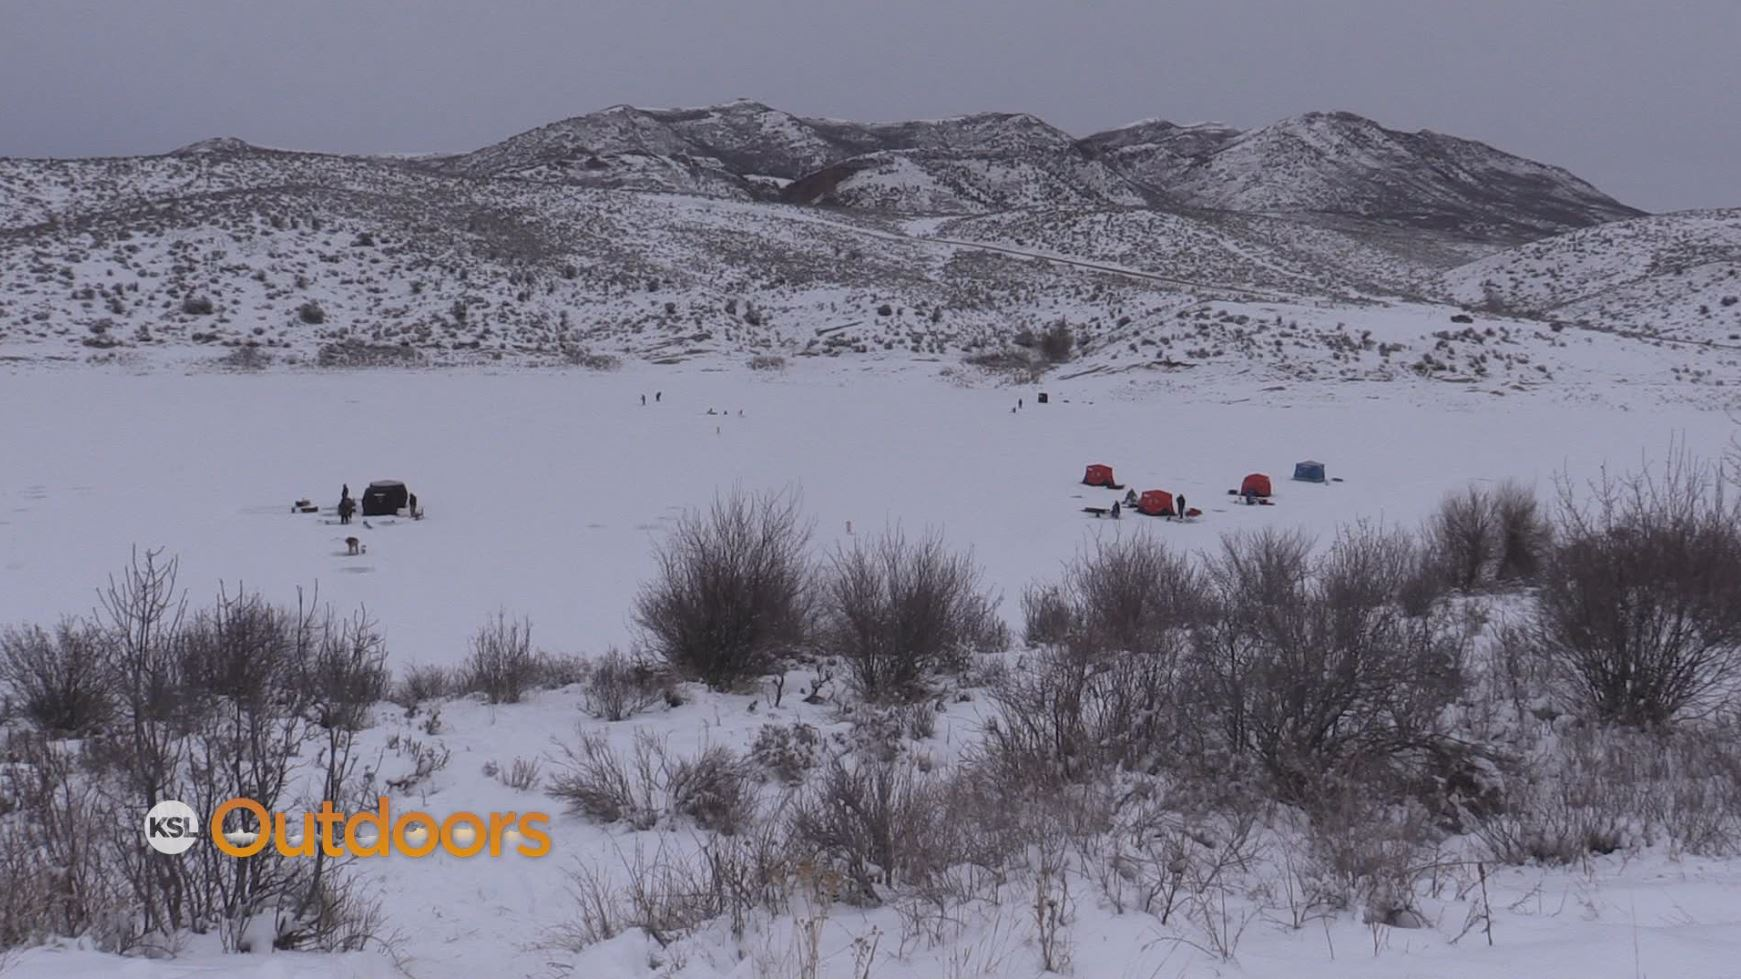 Ksl outdoors ice fishing at east canyon state park for Utah ice fishing report